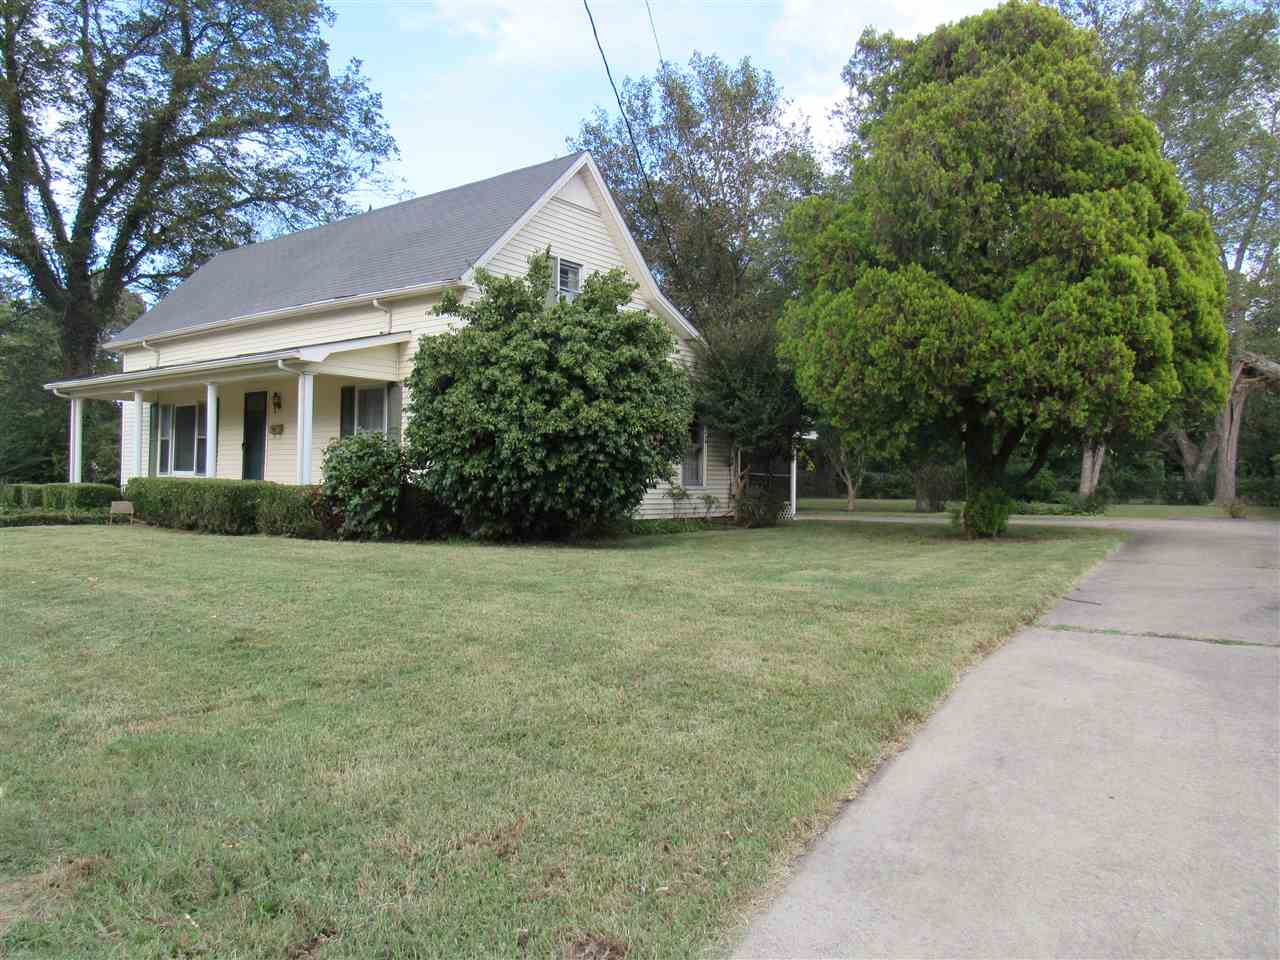 104 Shibley St, Newbern, Tennessee 38059, 2 Bedrooms Bedrooms, ,1 BathroomBathrooms,Residential,For Sale,104 Shibley St,190921